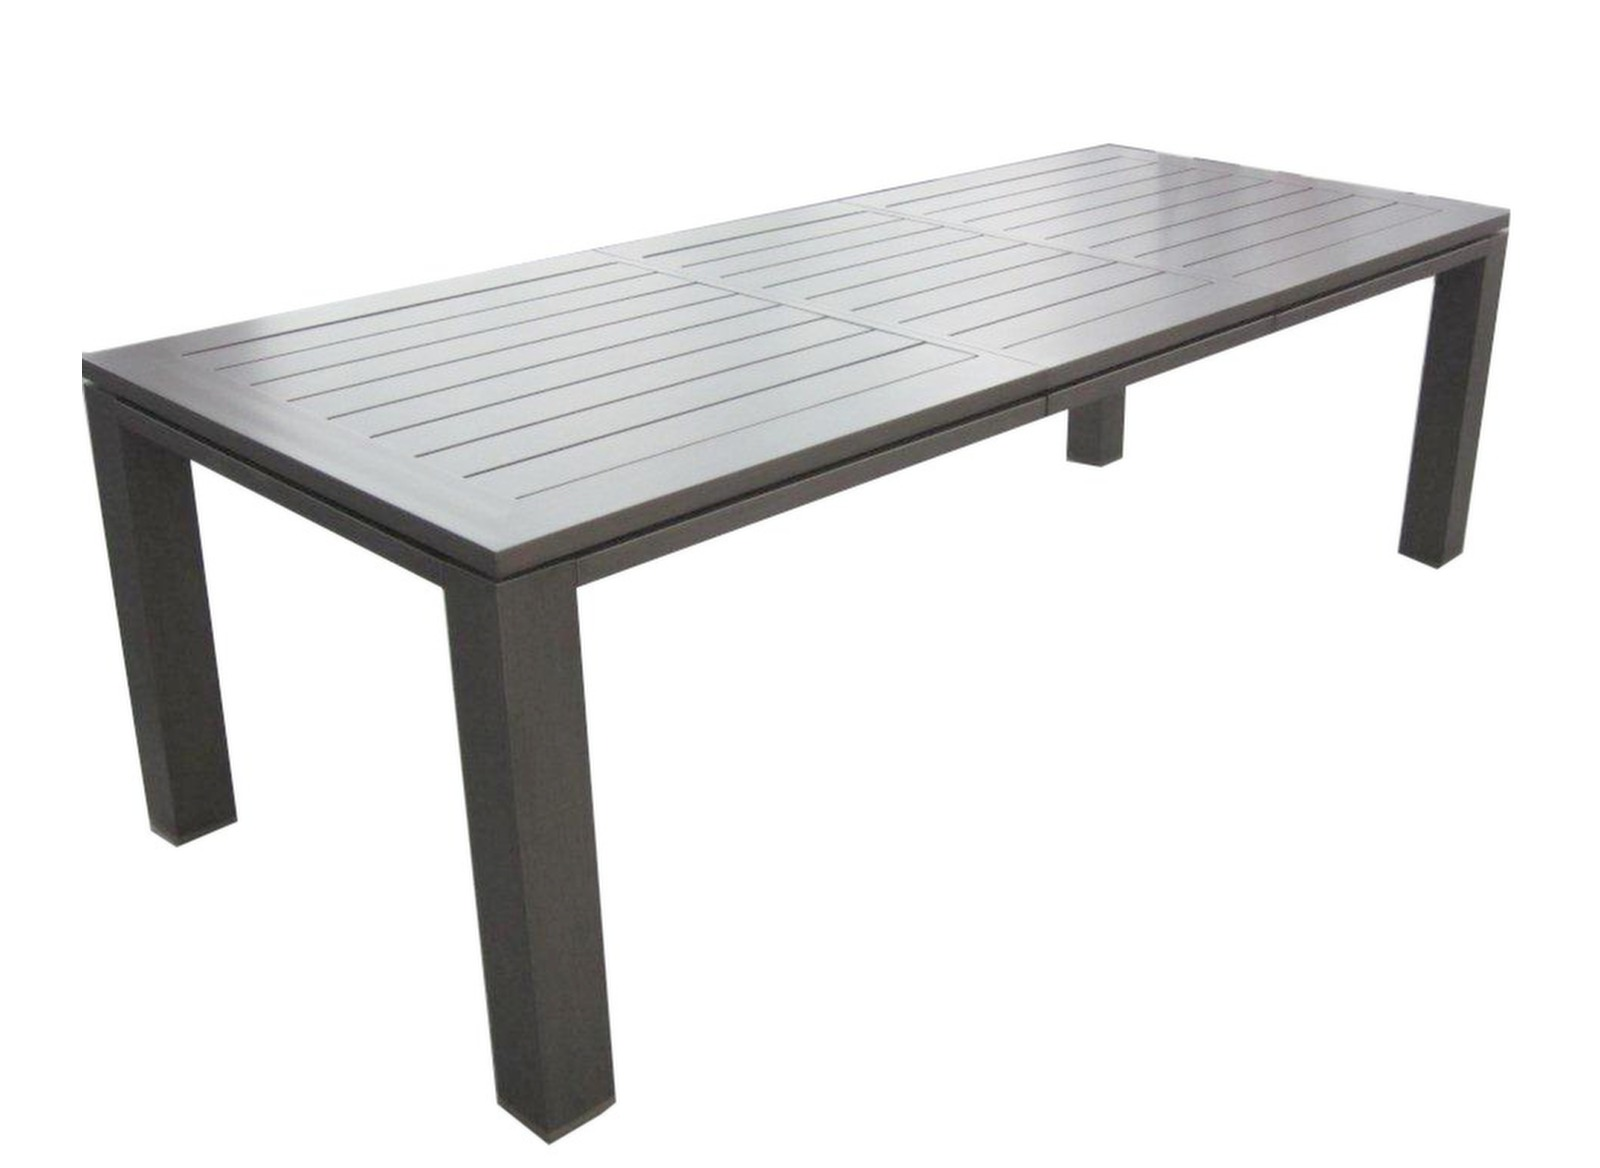 Table de jardin aluminium 180 240cm latino oc o proloisirs for Table en aluminium exterieur